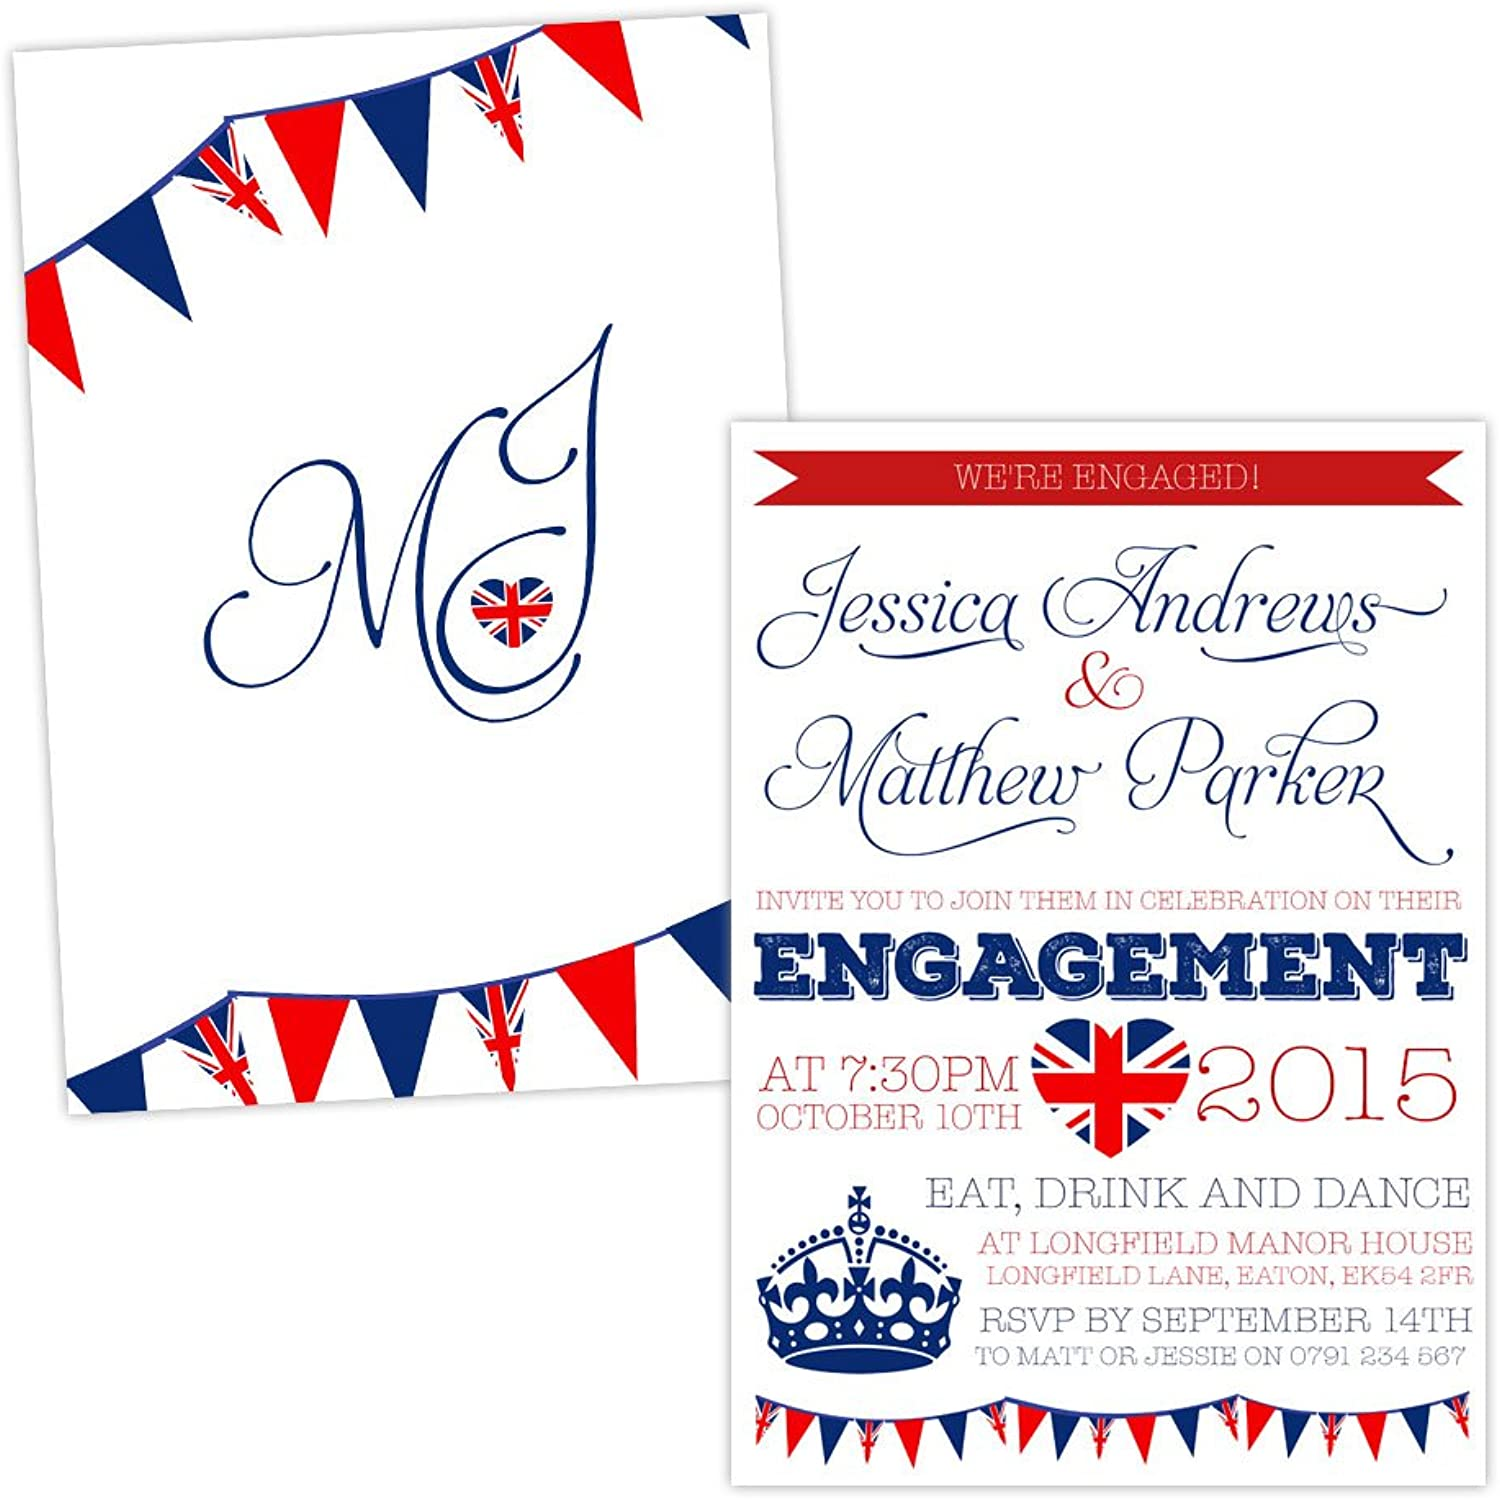 Personalised engagement party invitations BRITISH RETRO FREE DRAFT & FREE ENVELOPES (100, A6 singlesided White Fleck card)